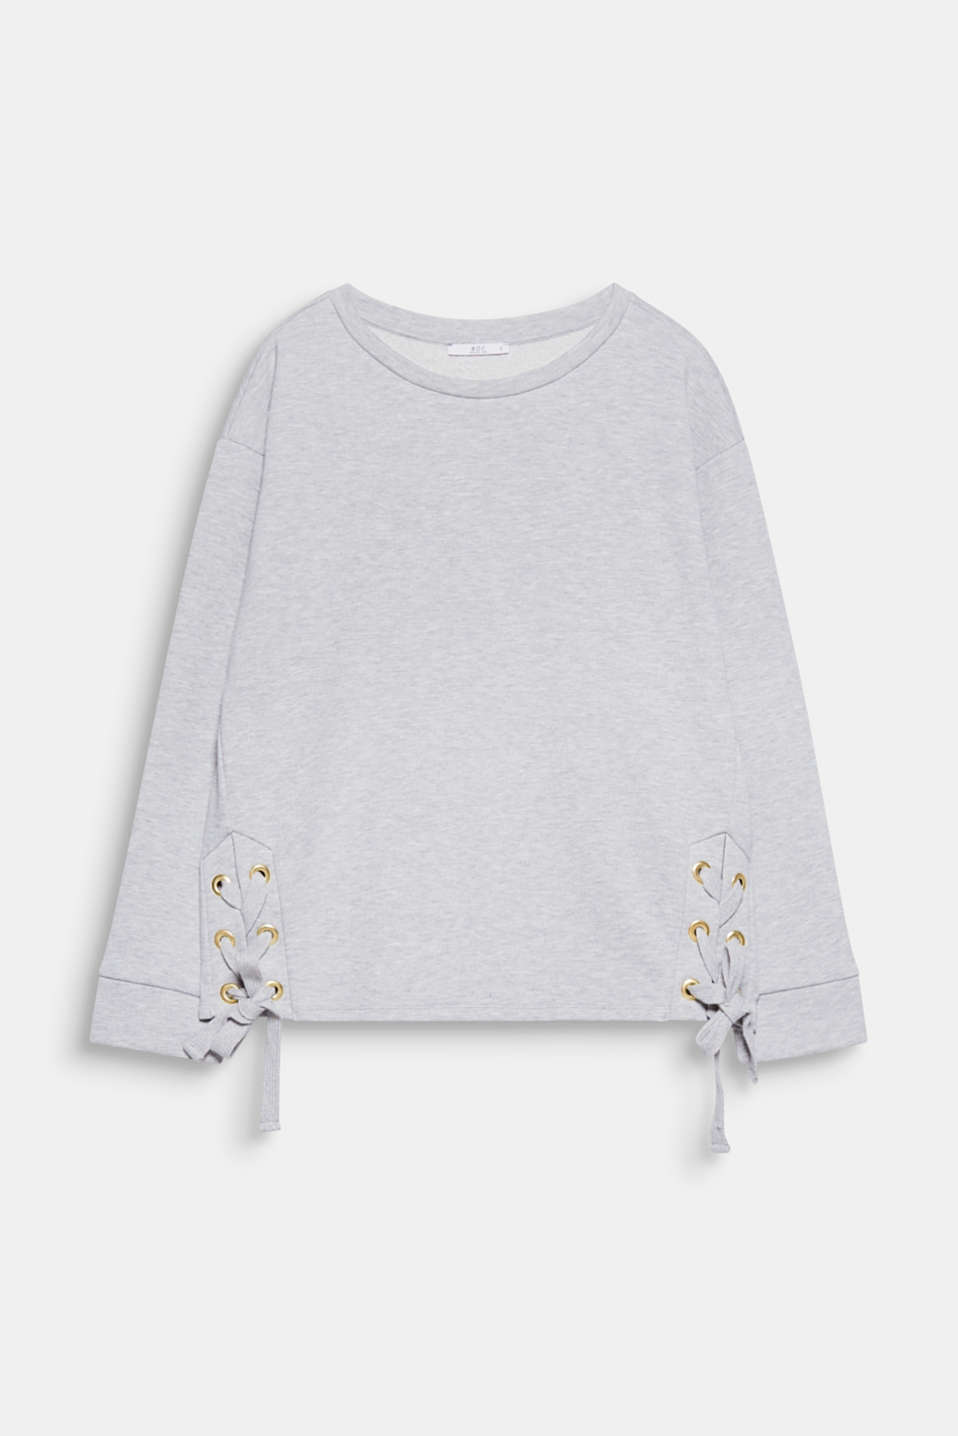 Beautiful lacing: large metal eyelets, wide woven tape add fabulous, eye-catching details to this melange sweatshirt!